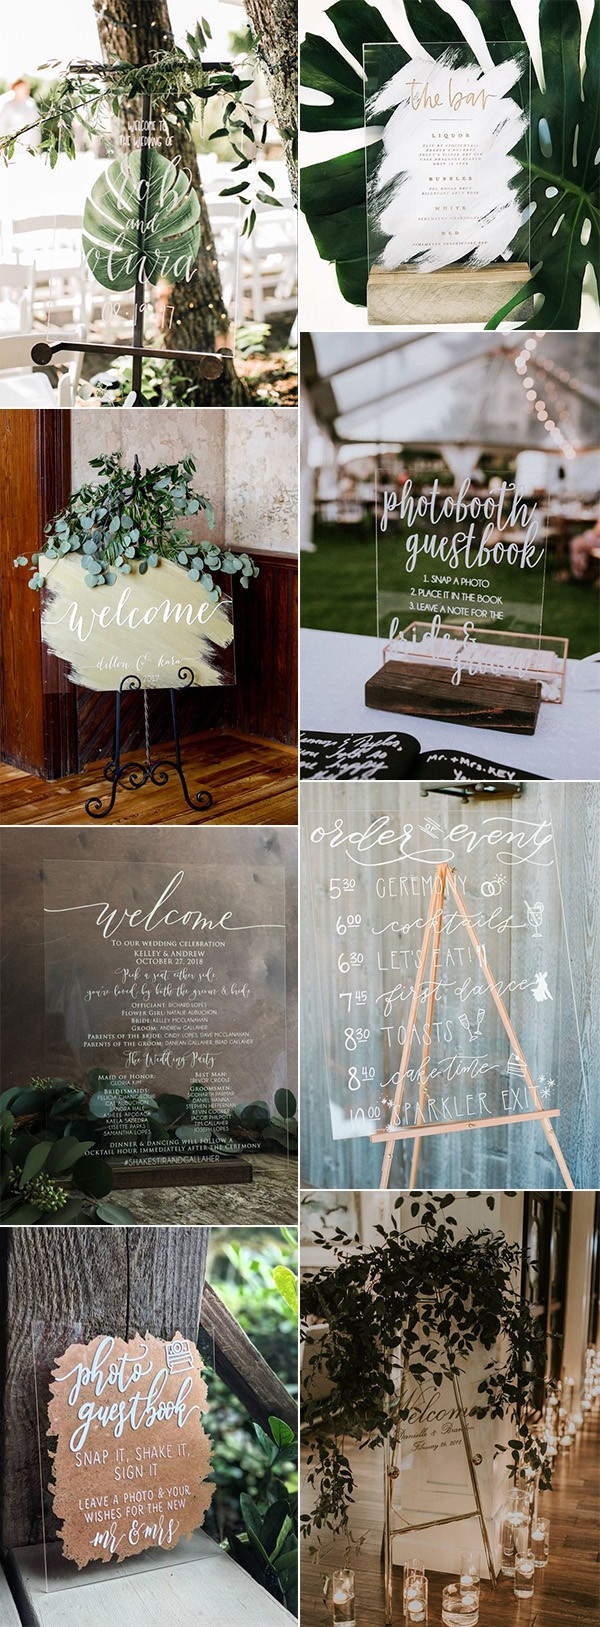 calligraphy acrylic wedding sign ideas for 2019 trends